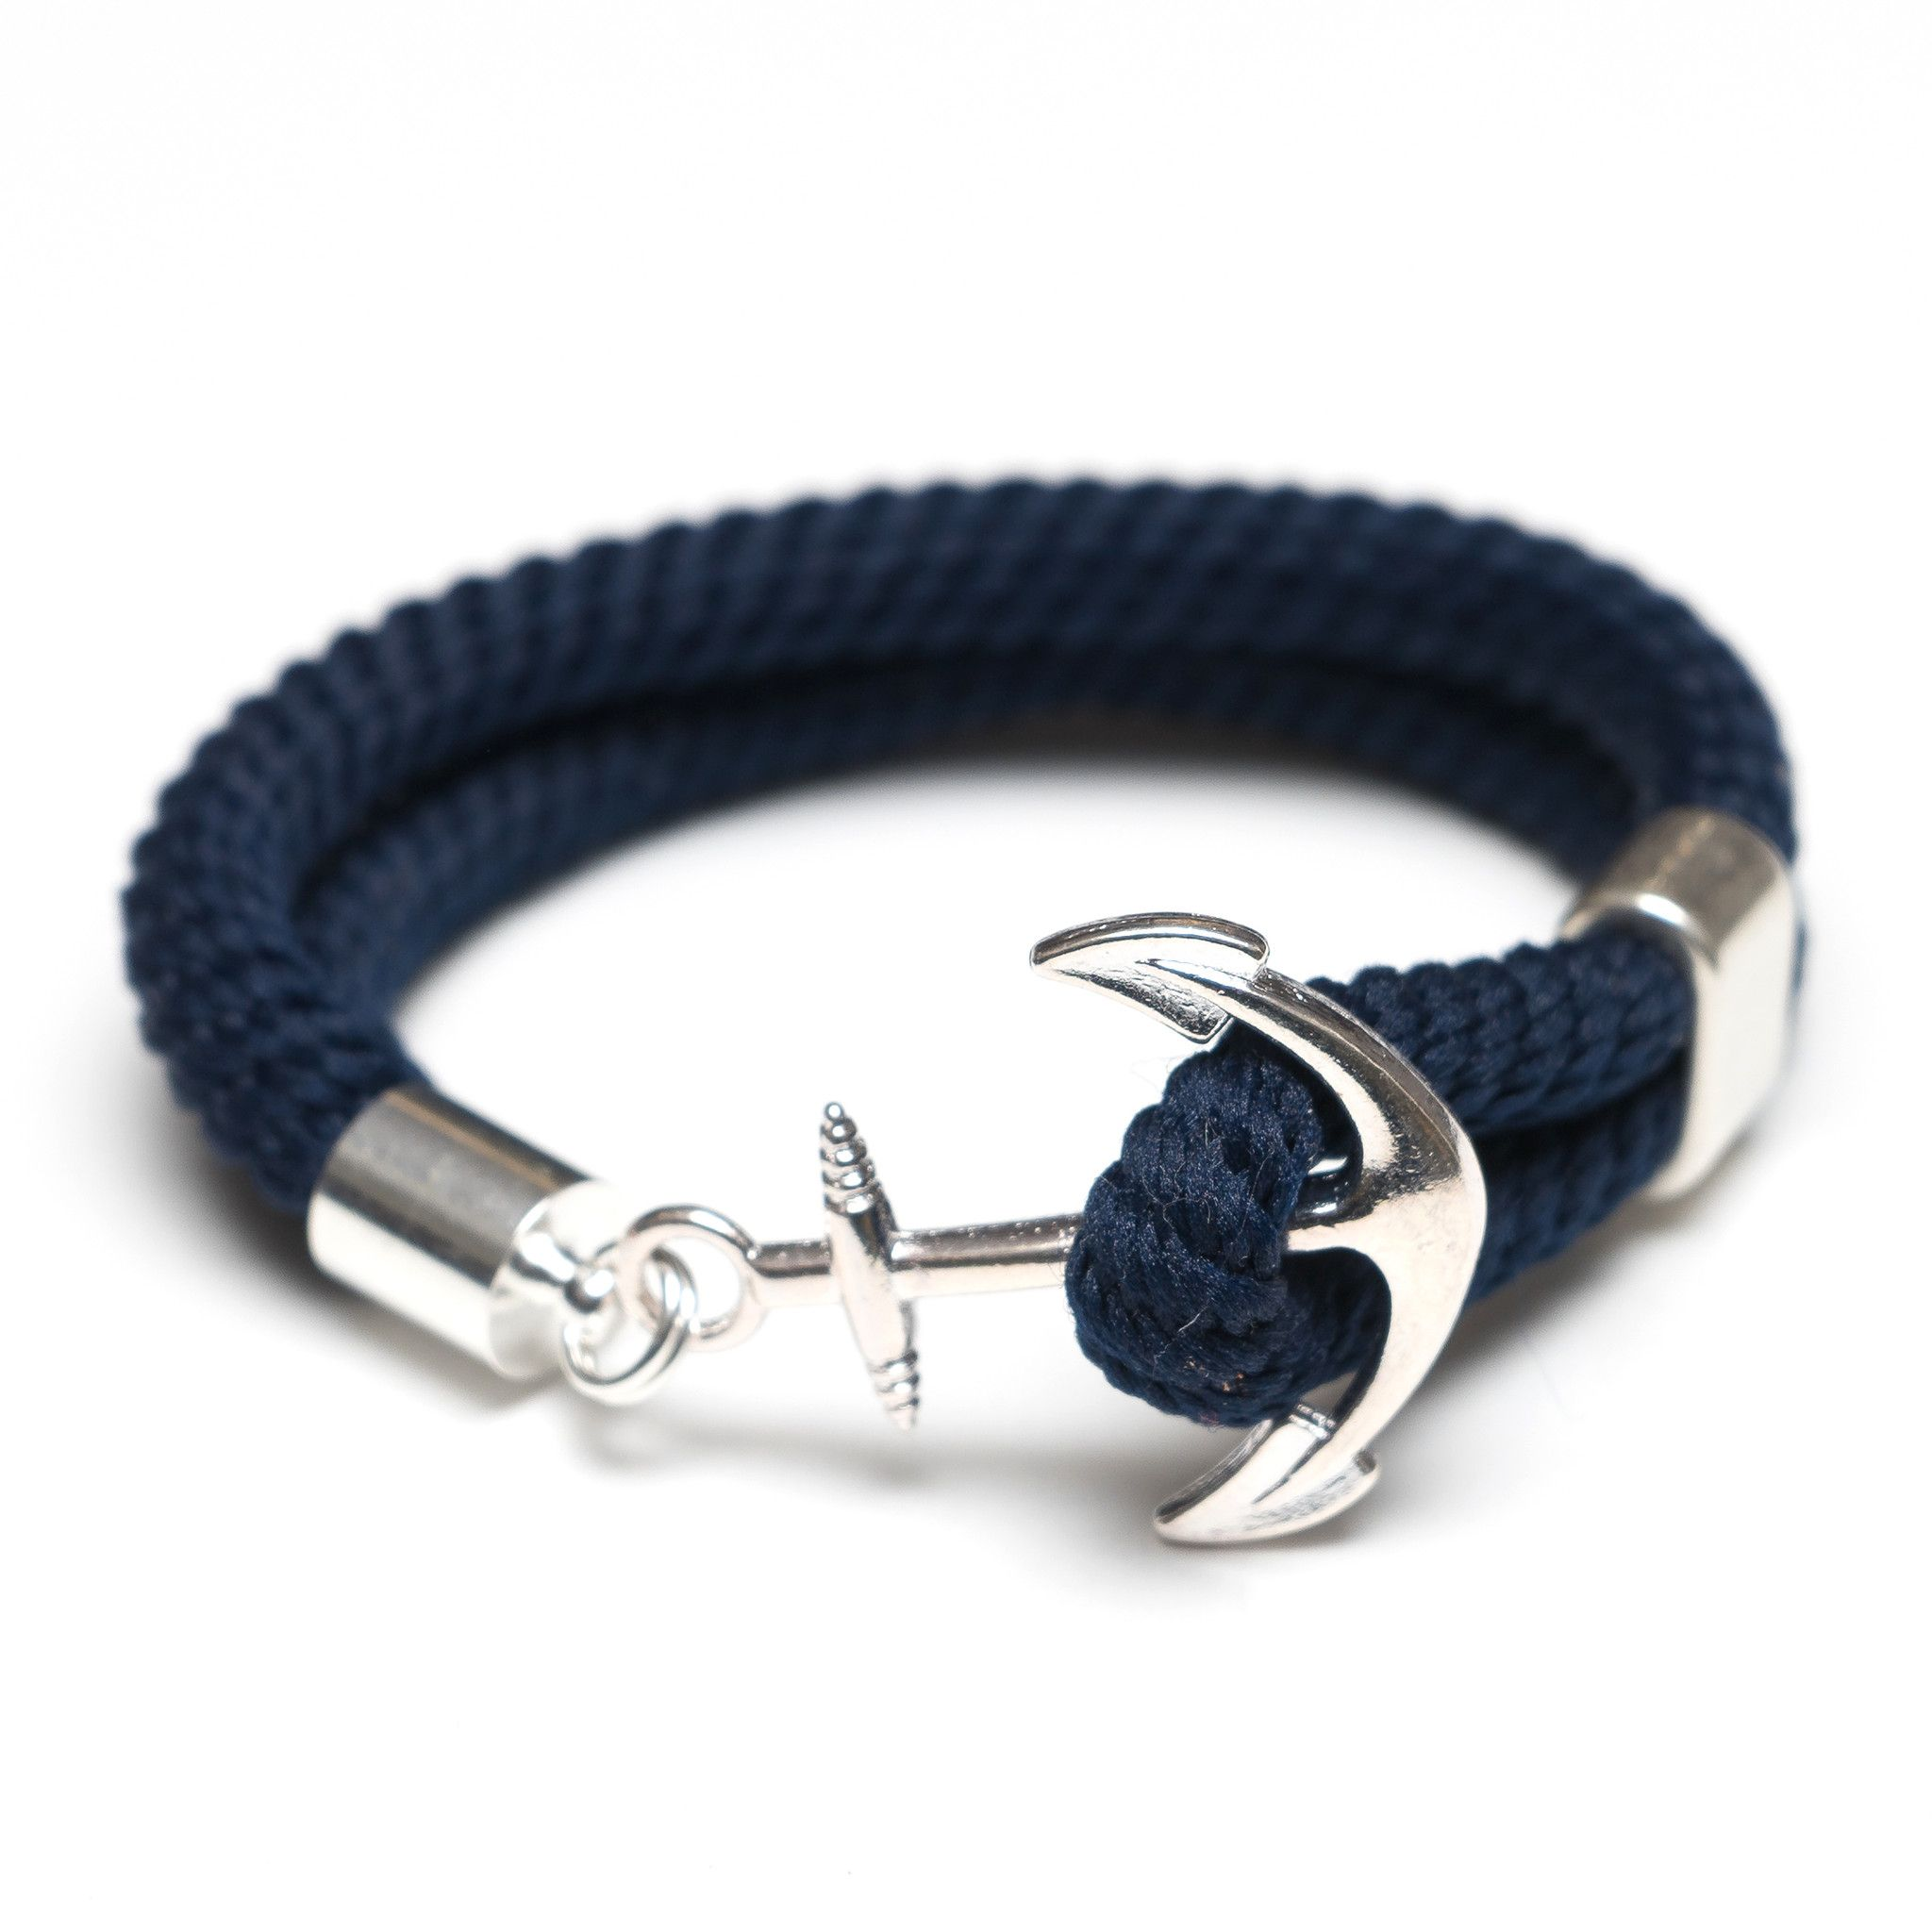 bracelet pinterest products rope paracord pin shackle nautical colors